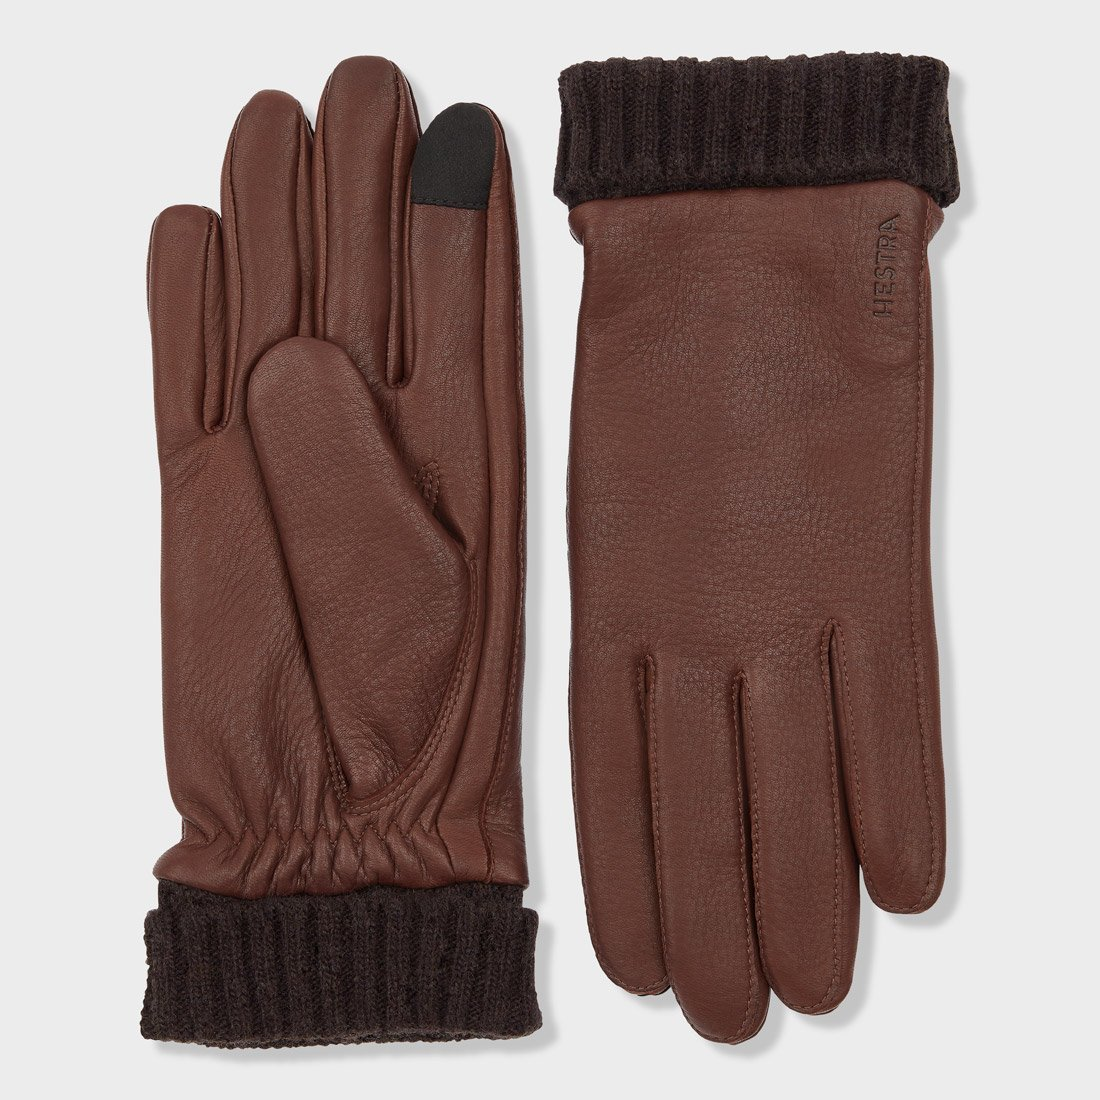 Hestra Women's Liv Glove Chocolate